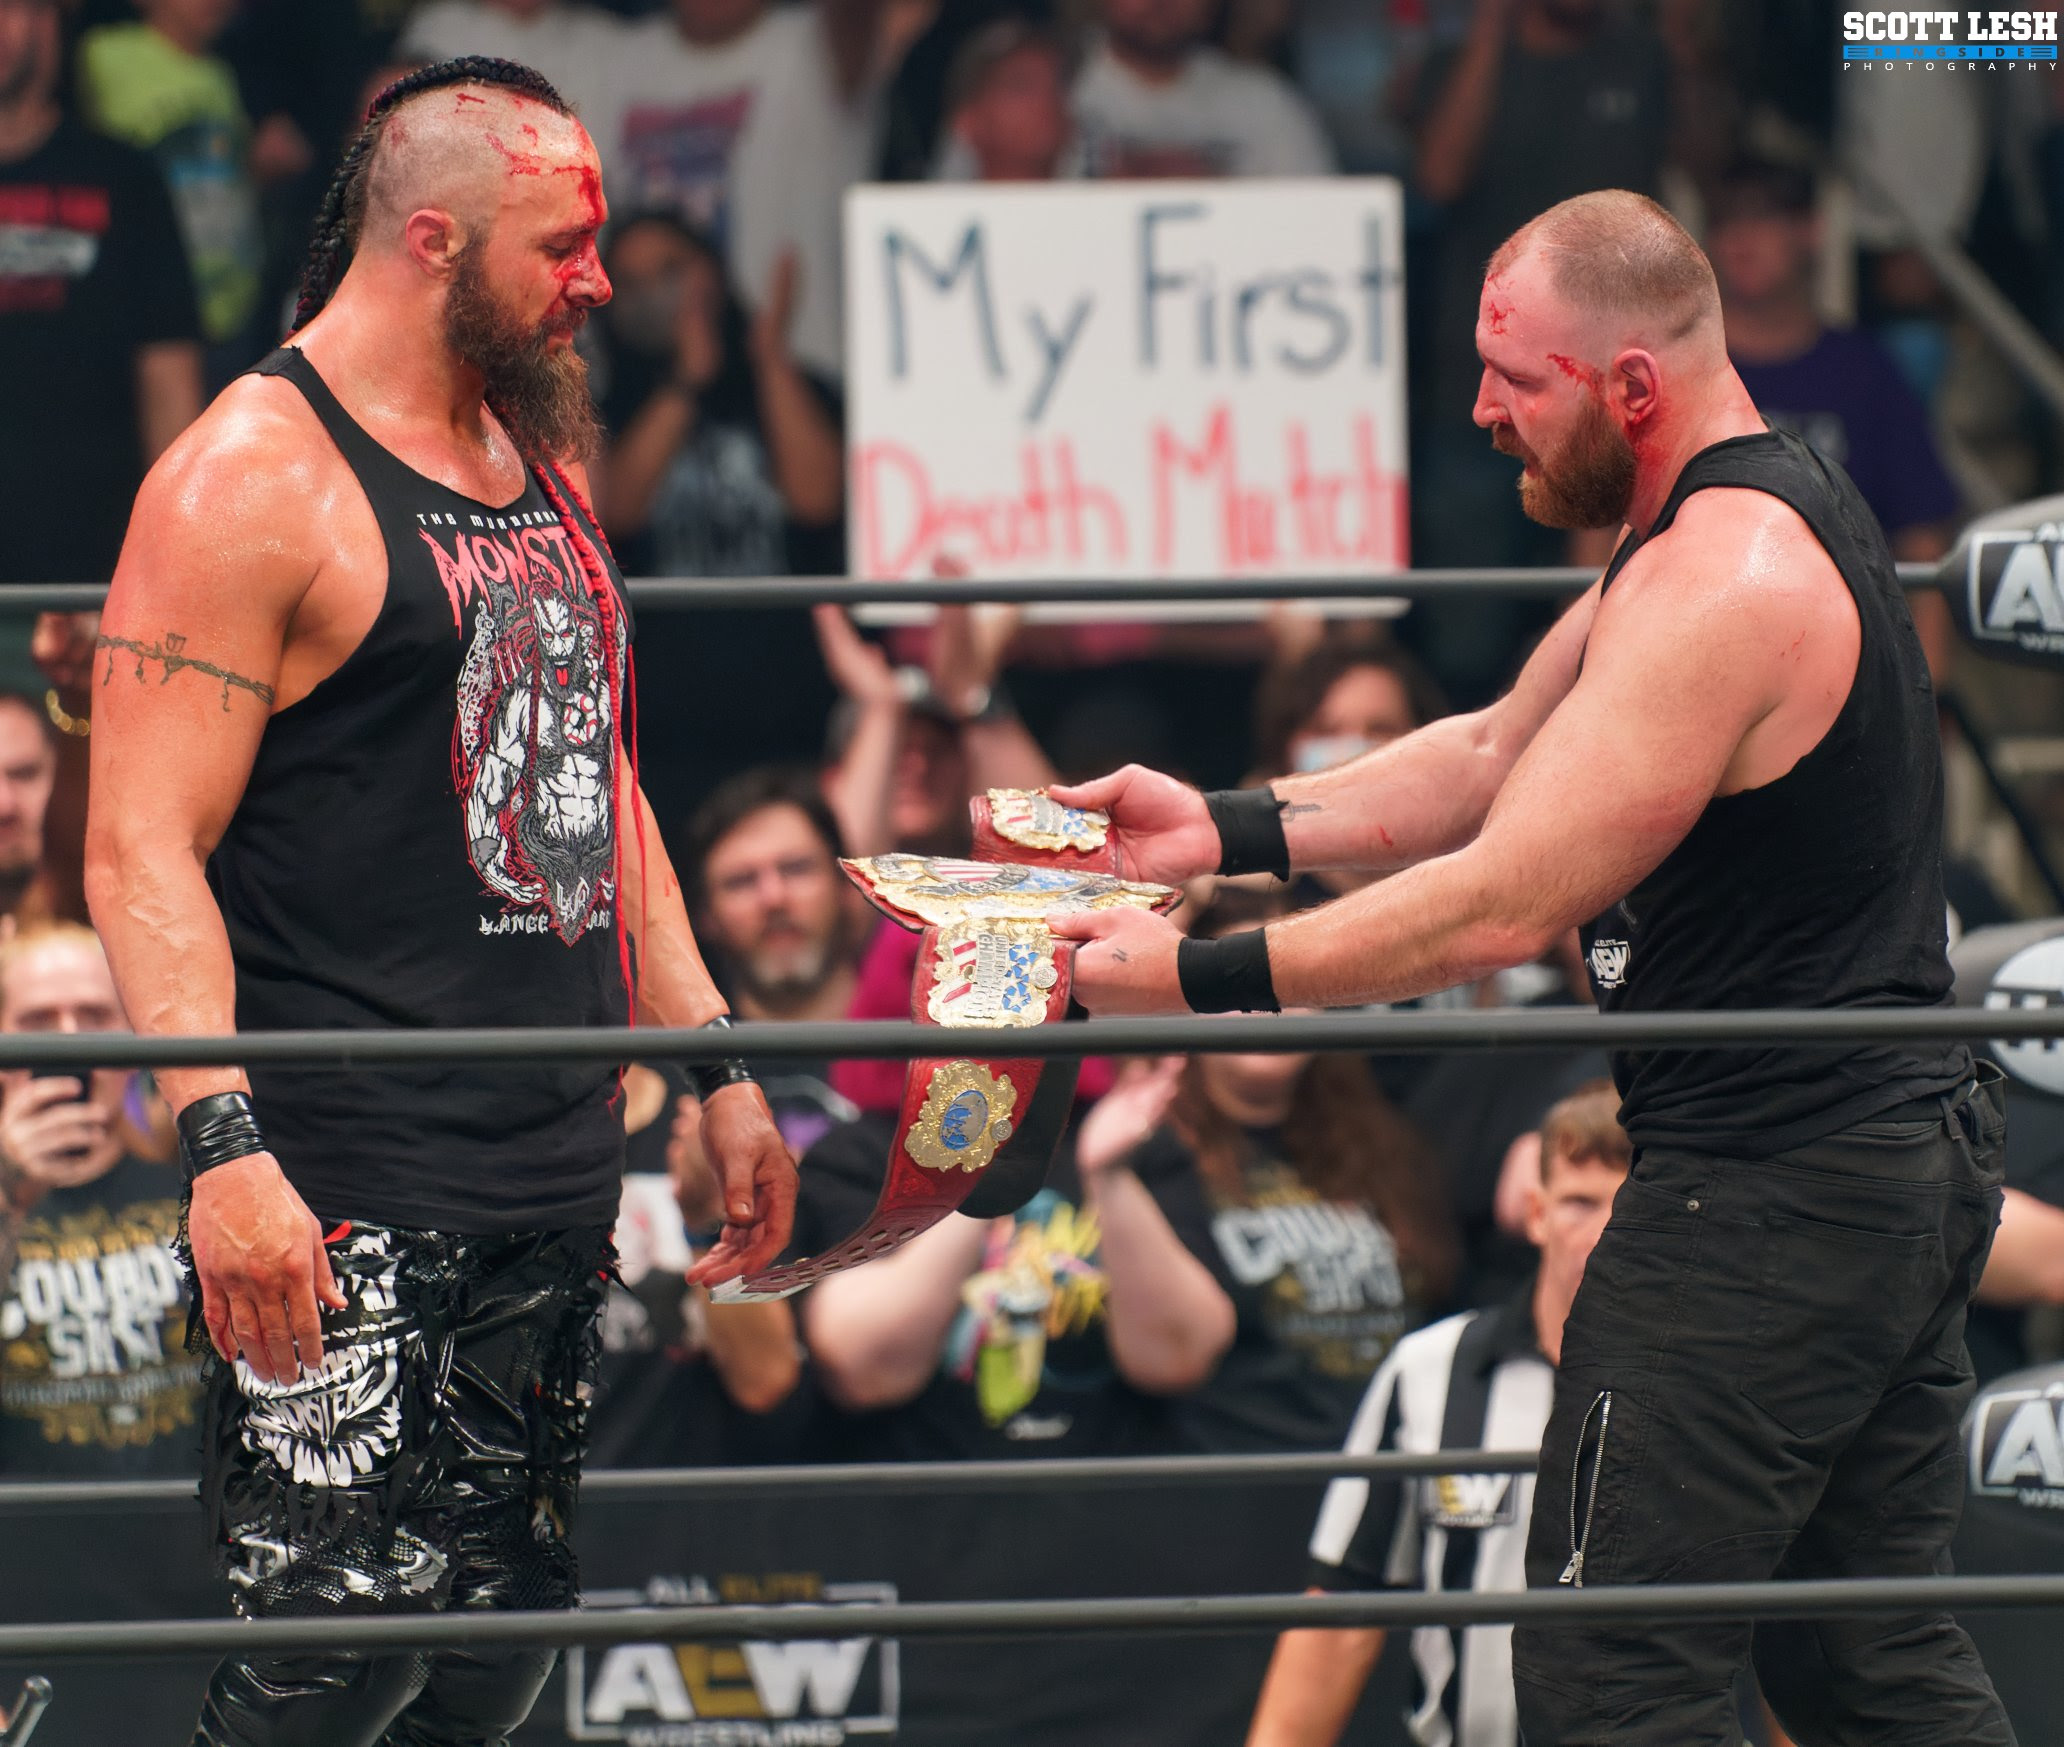 Jon Moxley Raises Lance Archer's Hand After Their Match on AEW Dynamite